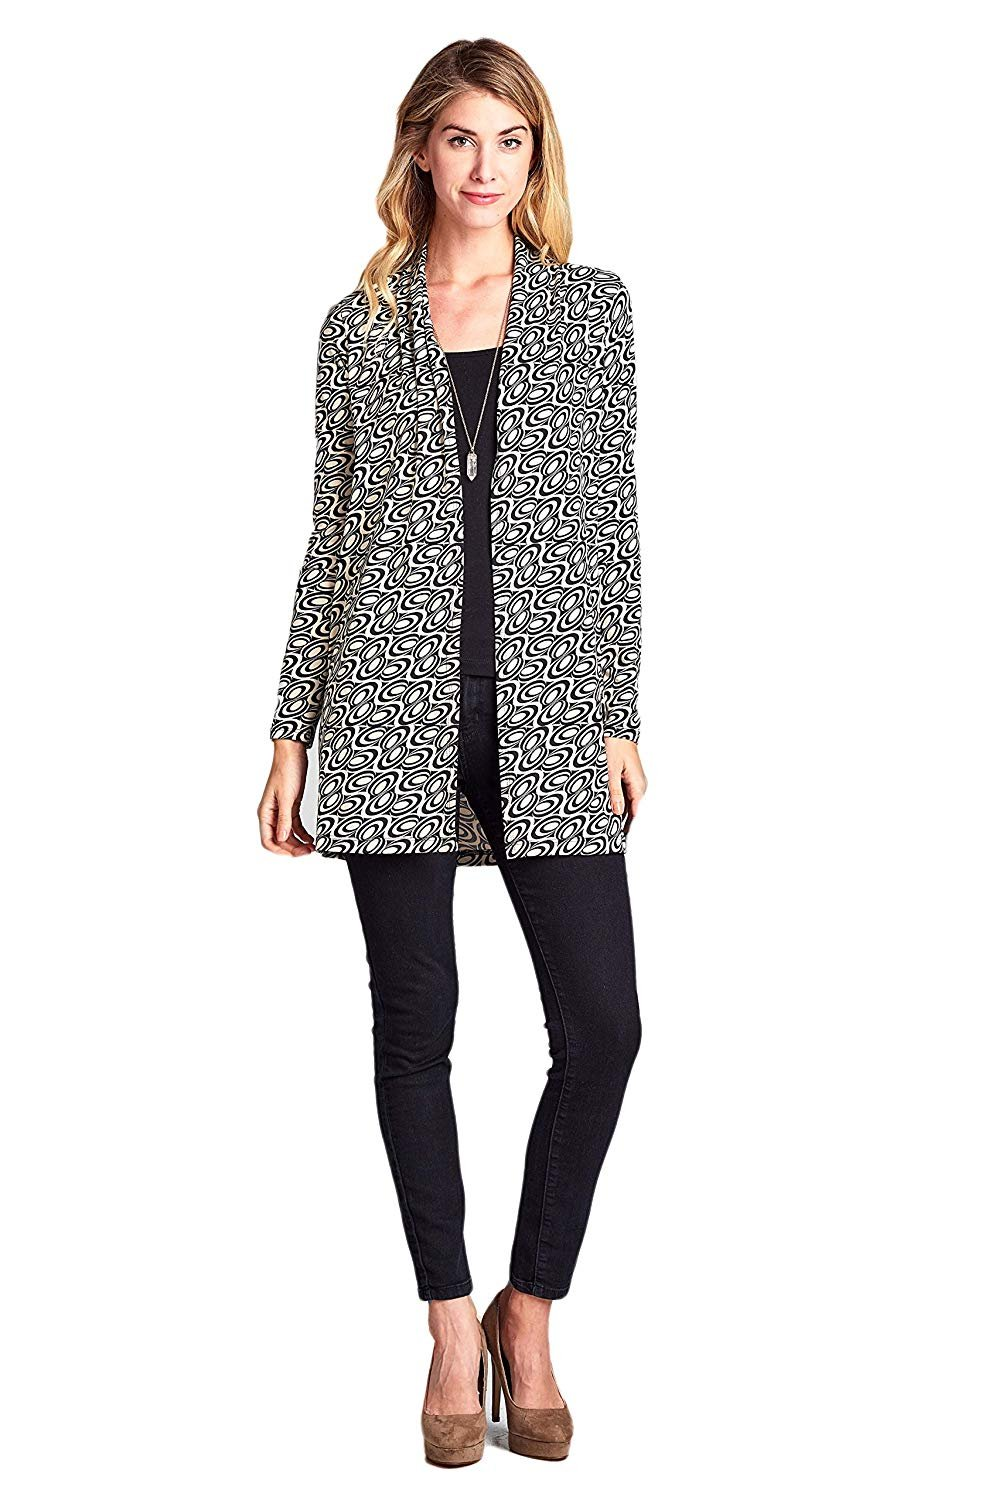 [ReneeC.][ReneeC. レディースカーディガンWomen`s Lightweight Open Front Multi Print Cardigan - Made In USA ](並行輸入品) B07FC8TS2S XX-Large|Black Ivory Black Ivory XX-Large